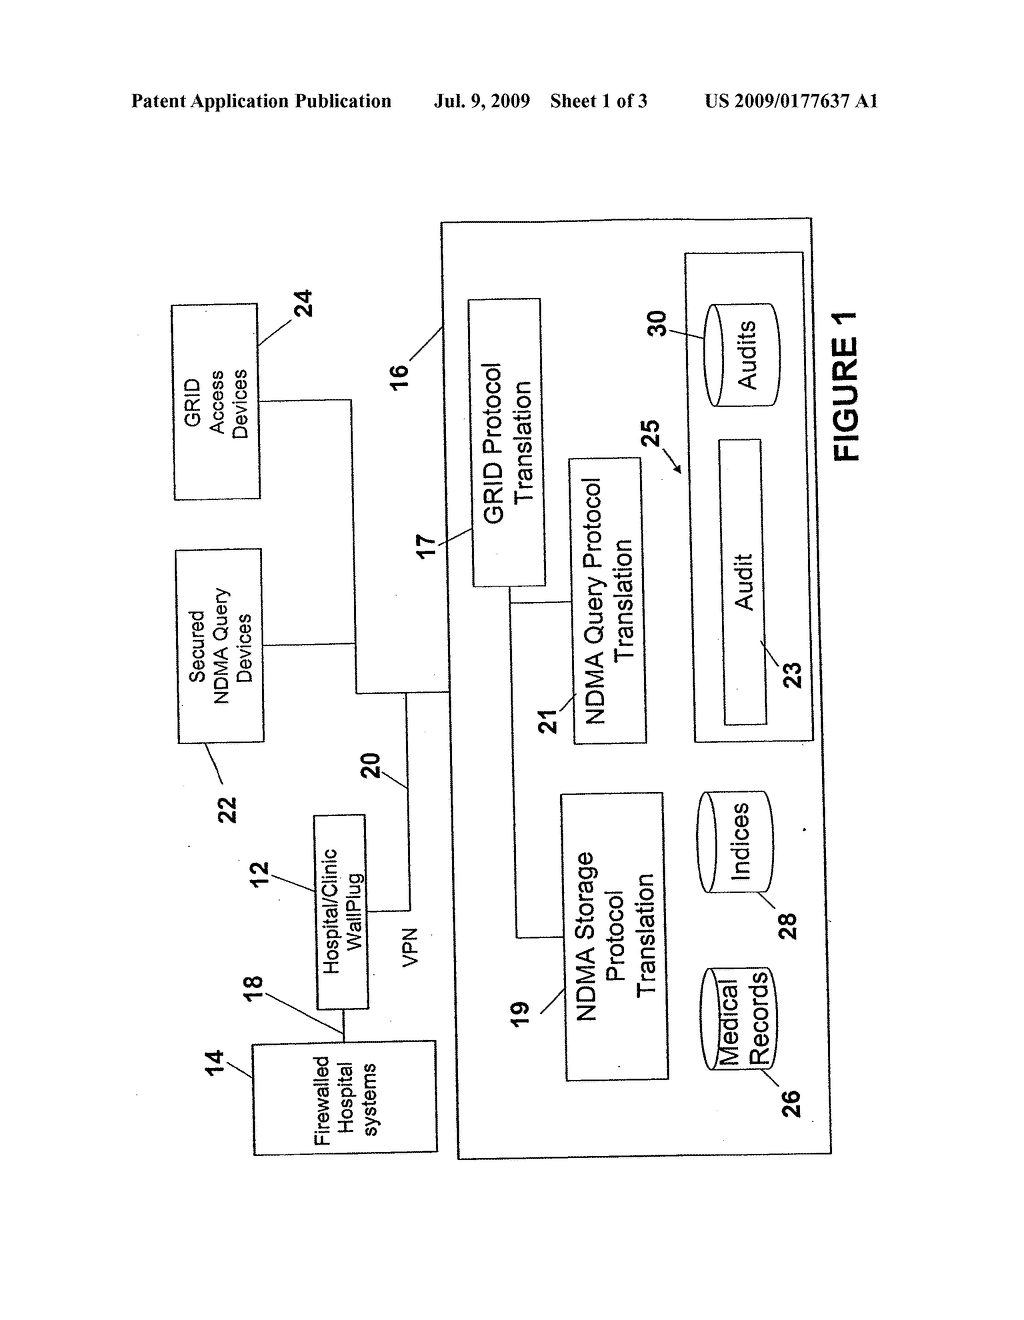 hight resolution of ndma db schema dicom to relational schema translation and xml to sql query translation diagram schematic and image 02